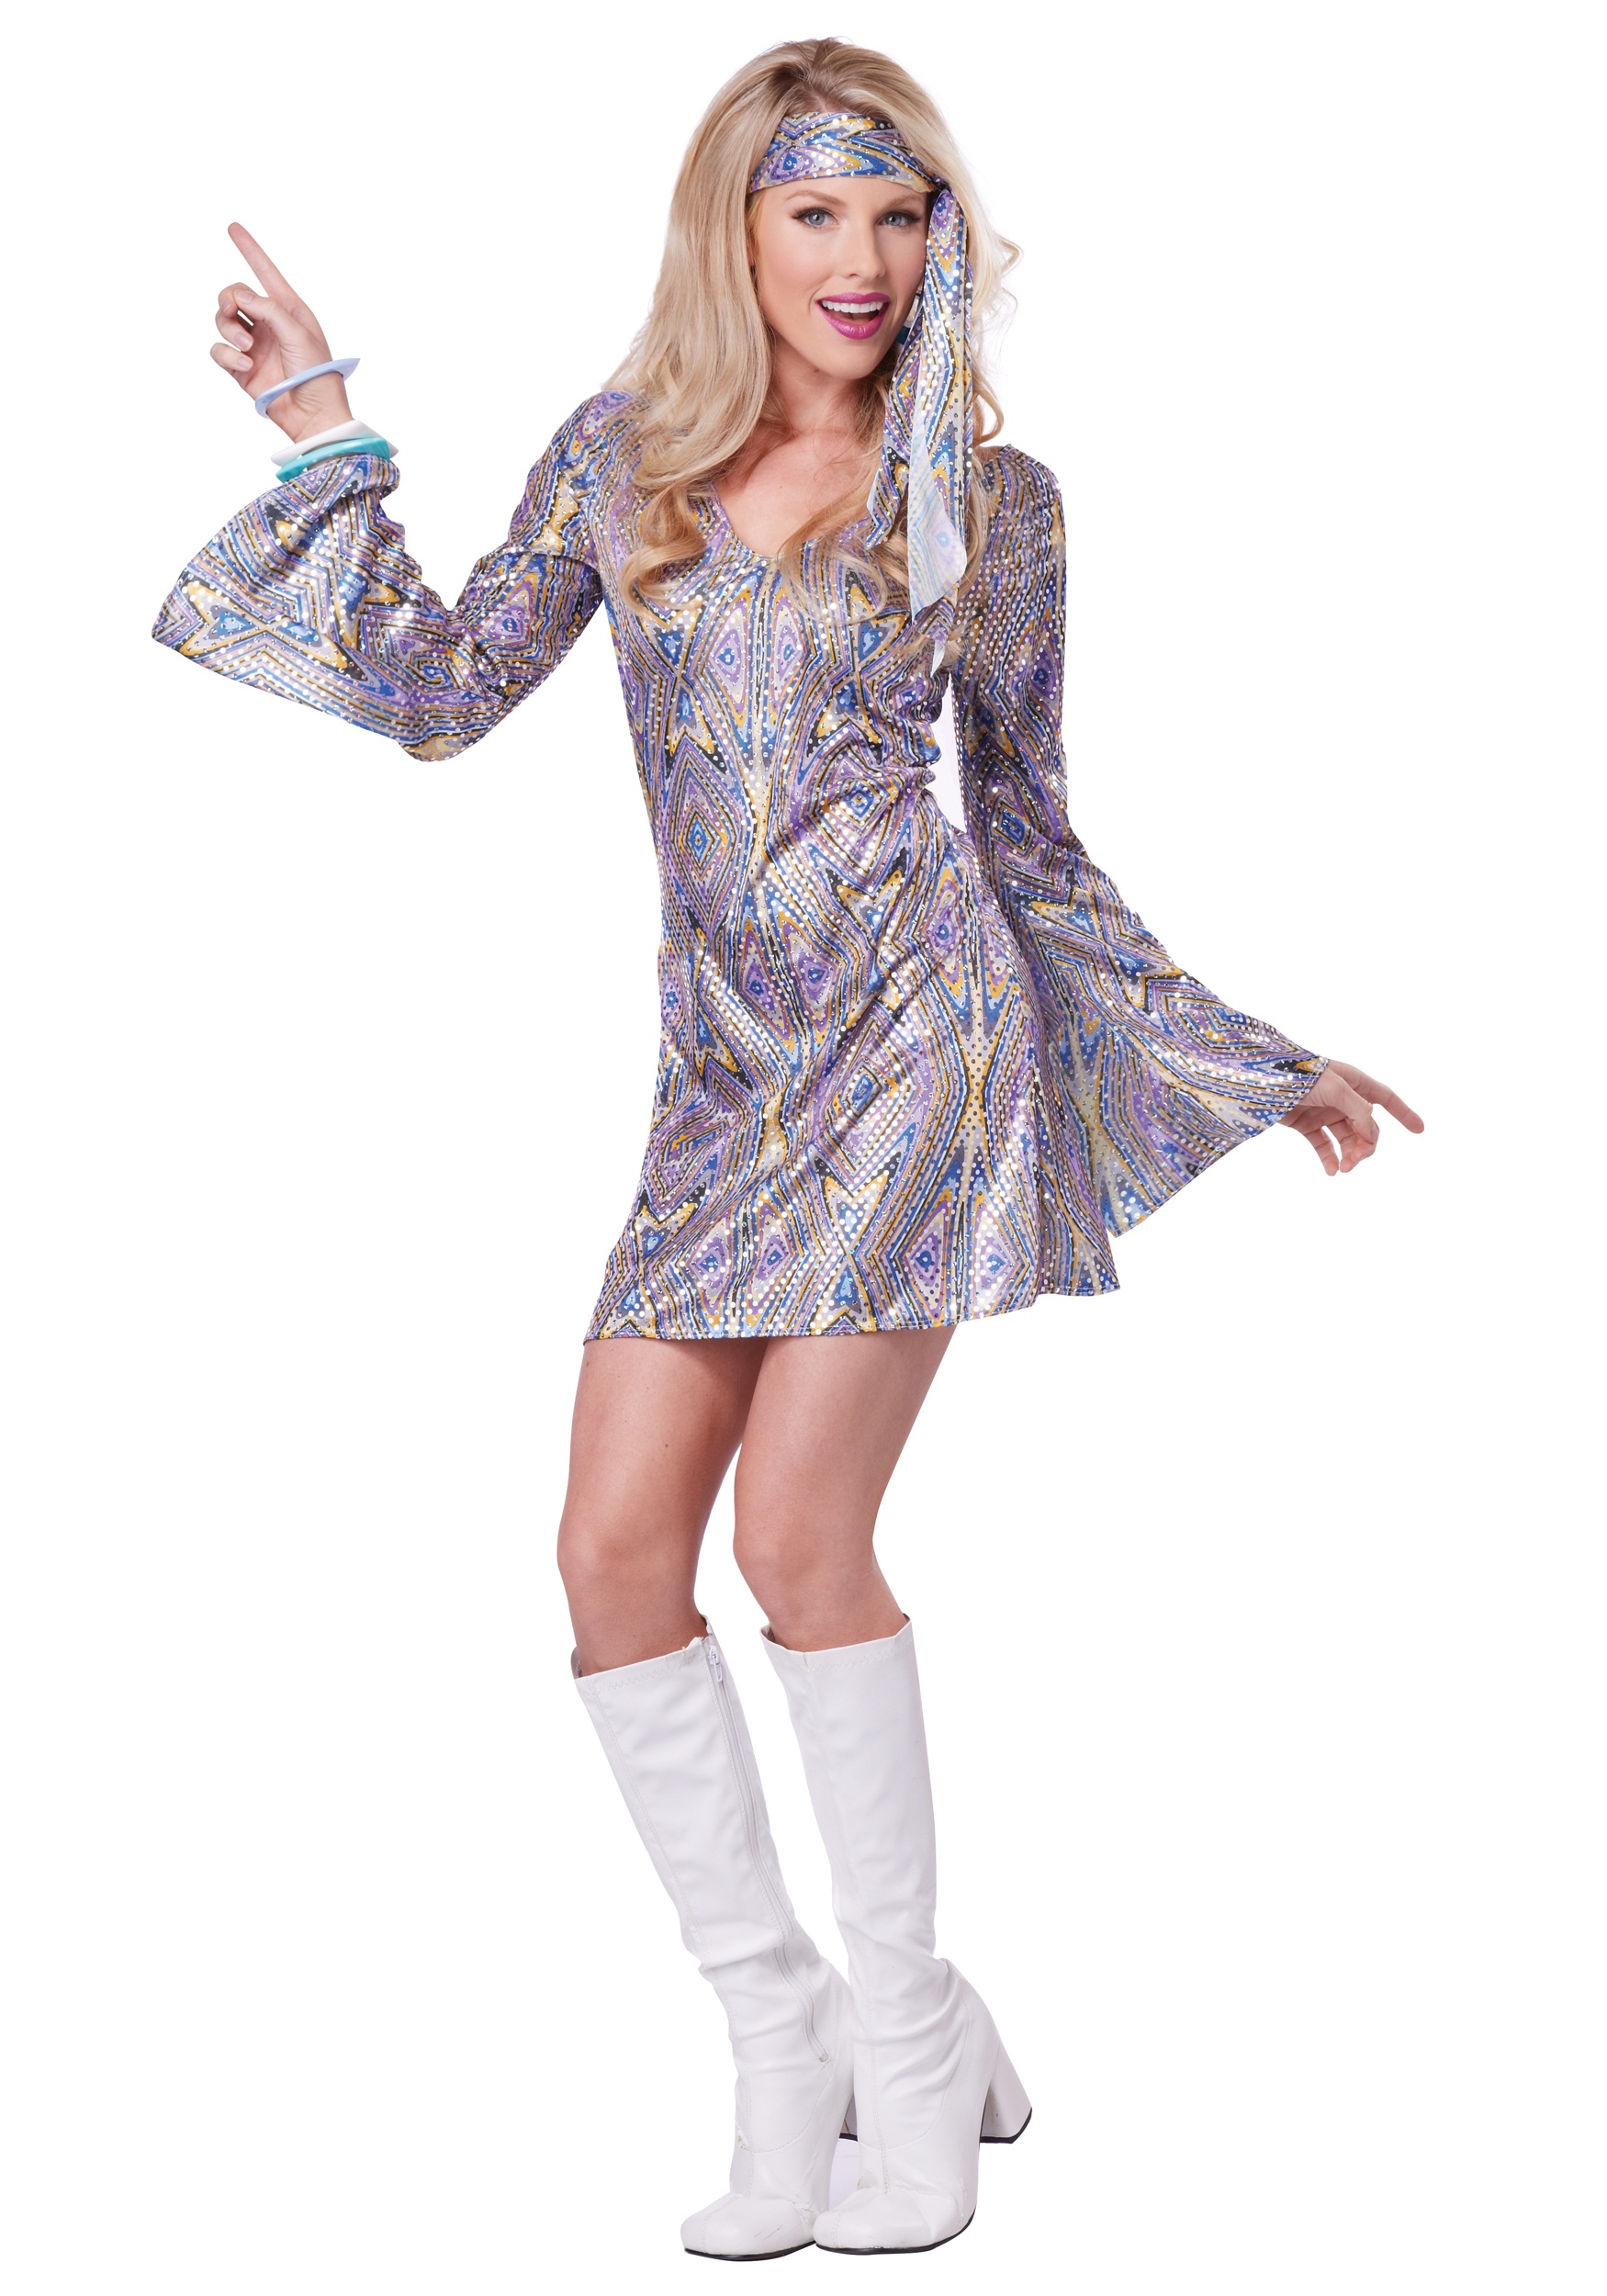 7615917ca8 70s Outfits   Costumes For Halloween - 1970 s Costumes